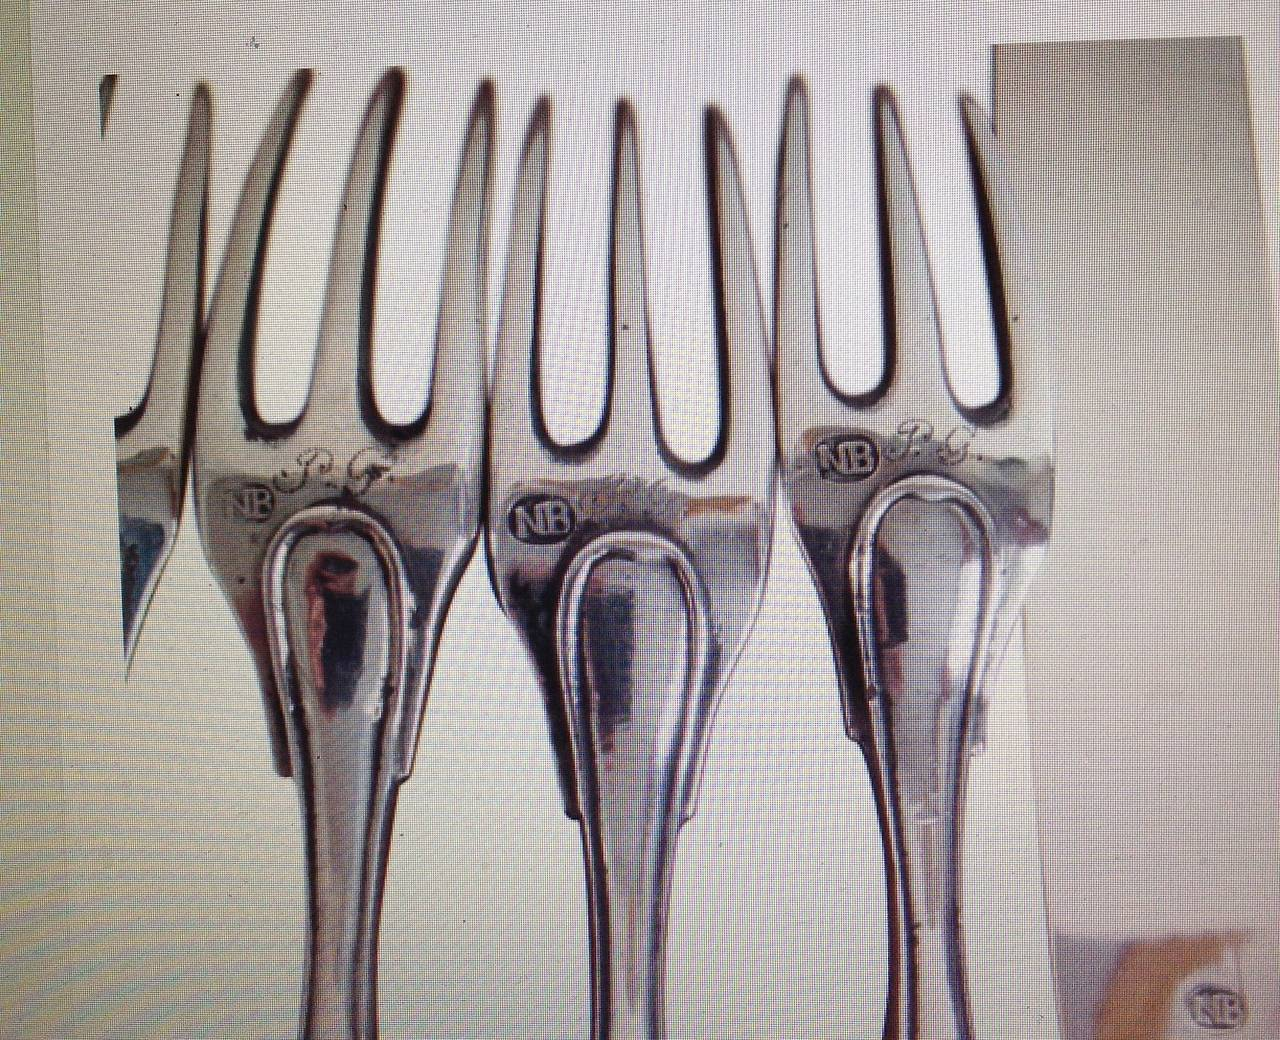 Early 19th Century Solid Silver and Horn Cutlery For Sale 3